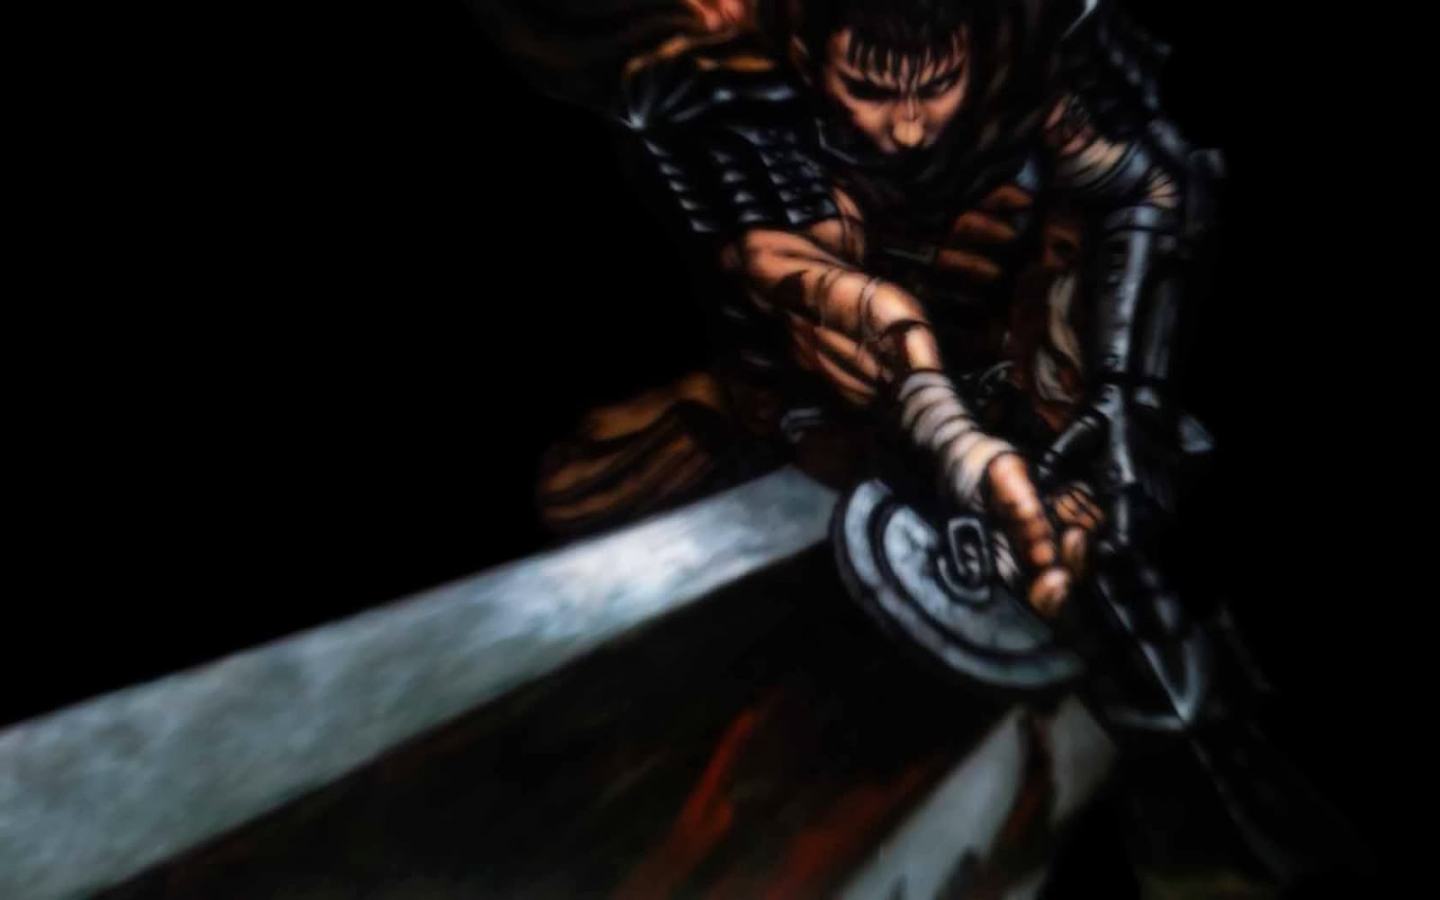 Free Download Berserk Wallpaper Full Hd Android Iphone Guts